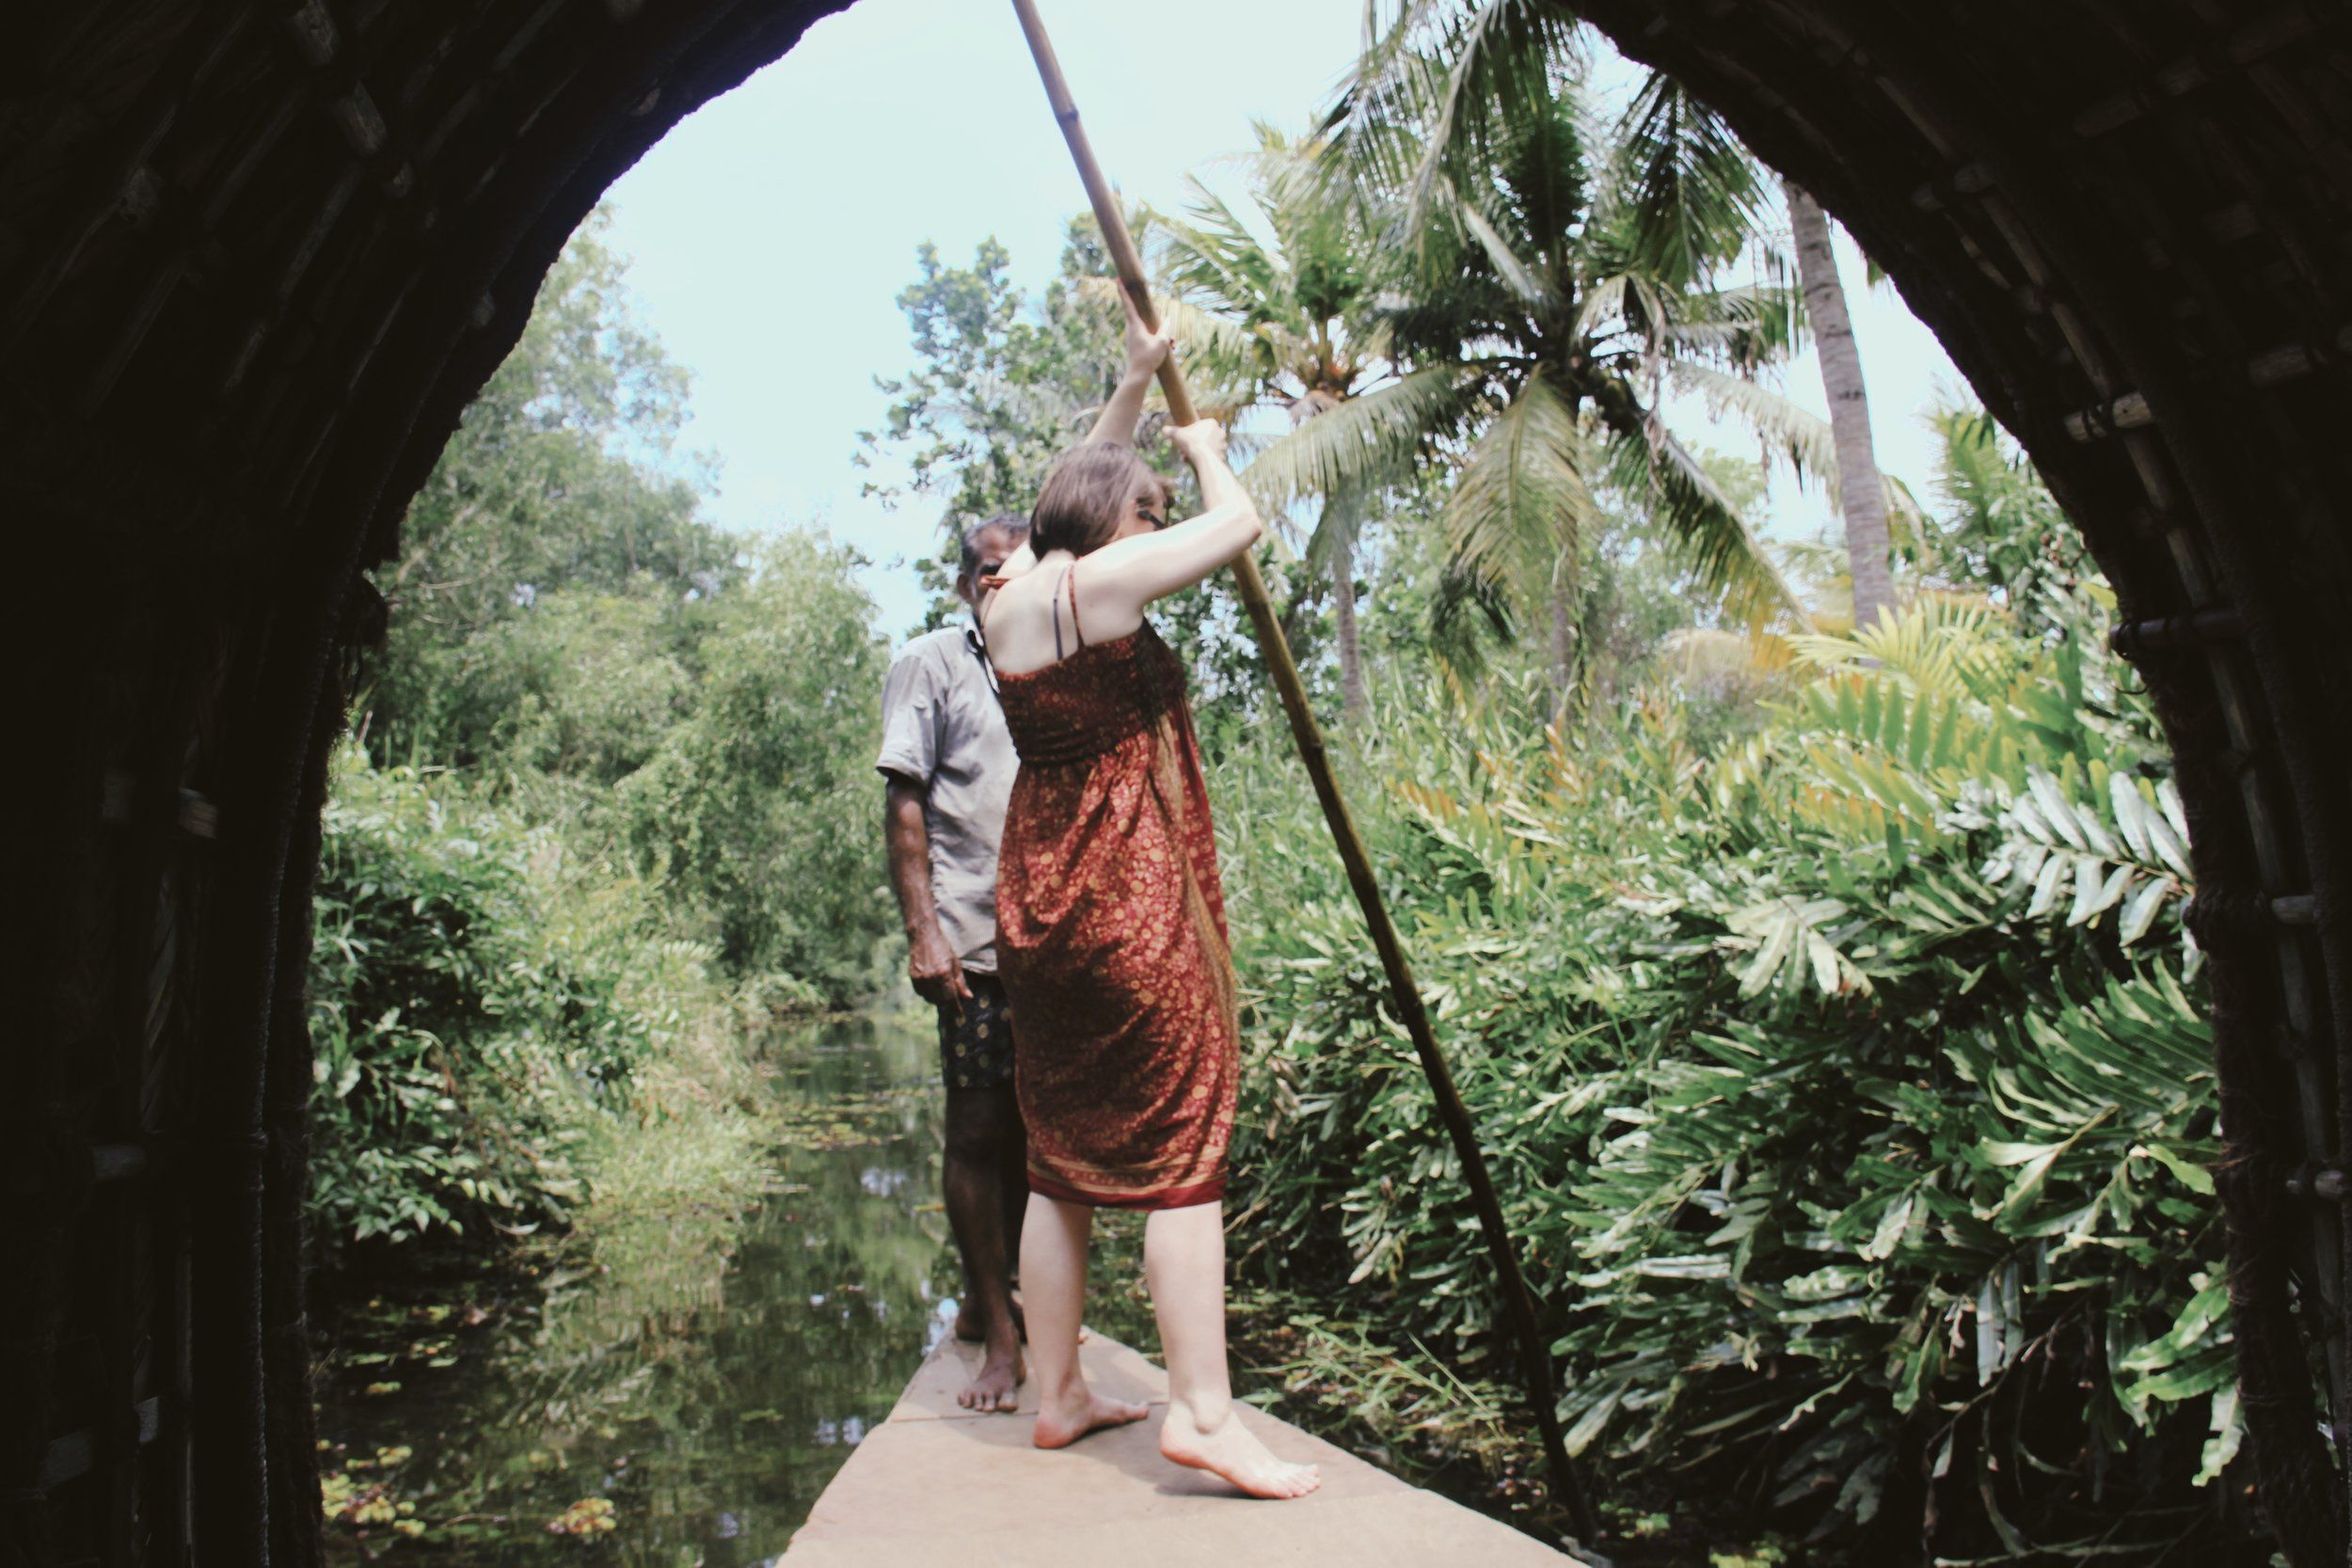 Learning how to steer a boat through the backwaters of Alappuzha, Kerala.